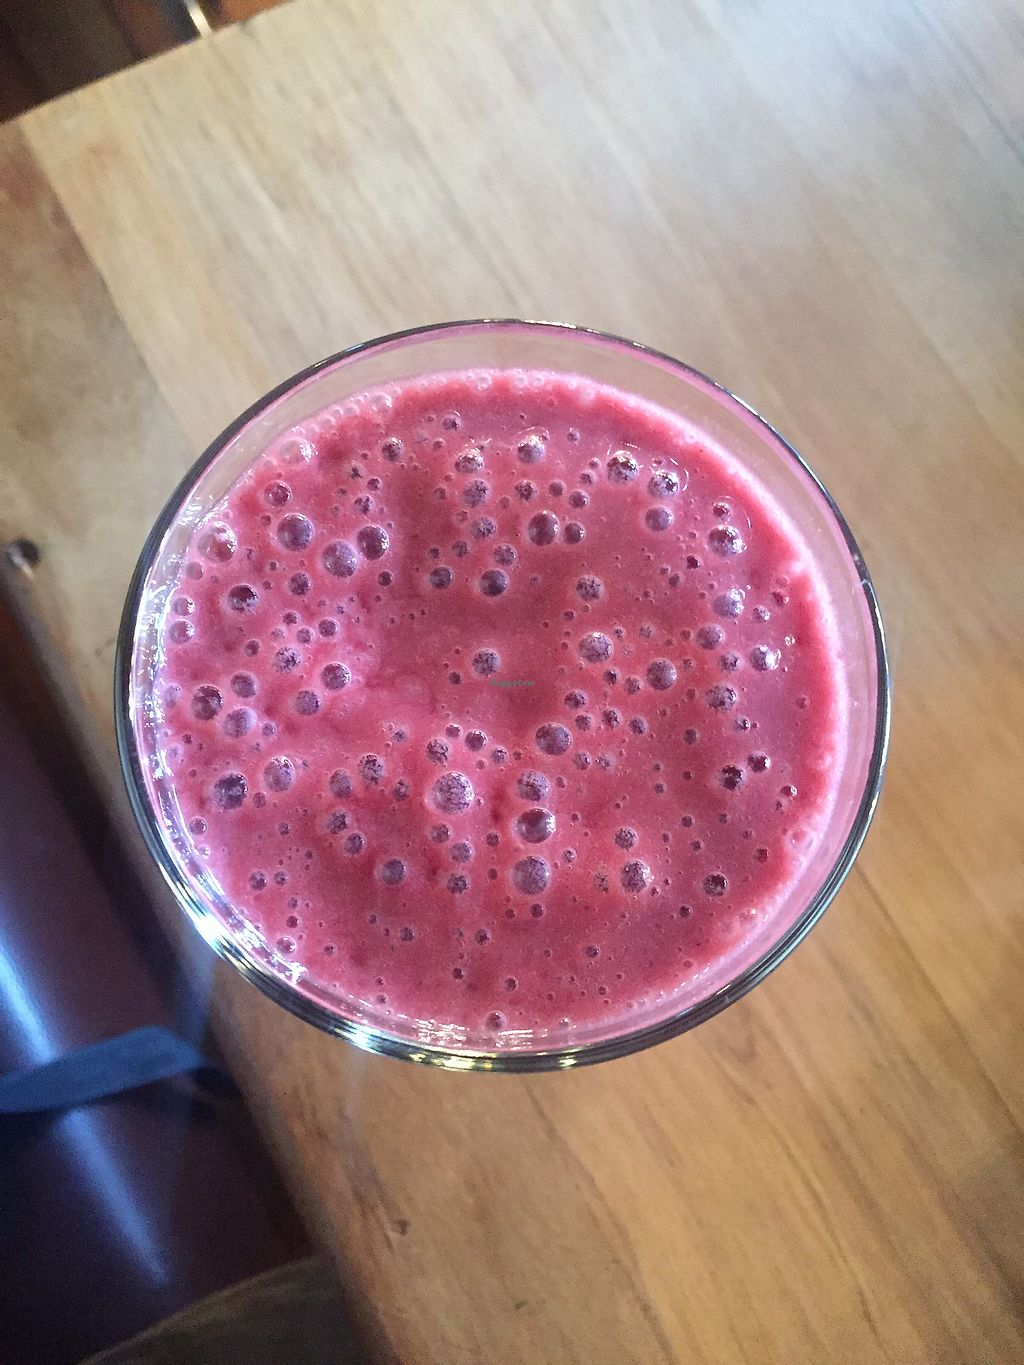 """Photo of C1 Espresso  by <a href=""""/members/profile/Tiggy"""">Tiggy</a> <br/>Vegan berry smoothie $8.90 - Delicious <br/> January 26, 2018  - <a href='/contact/abuse/image/92441/351244'>Report</a>"""